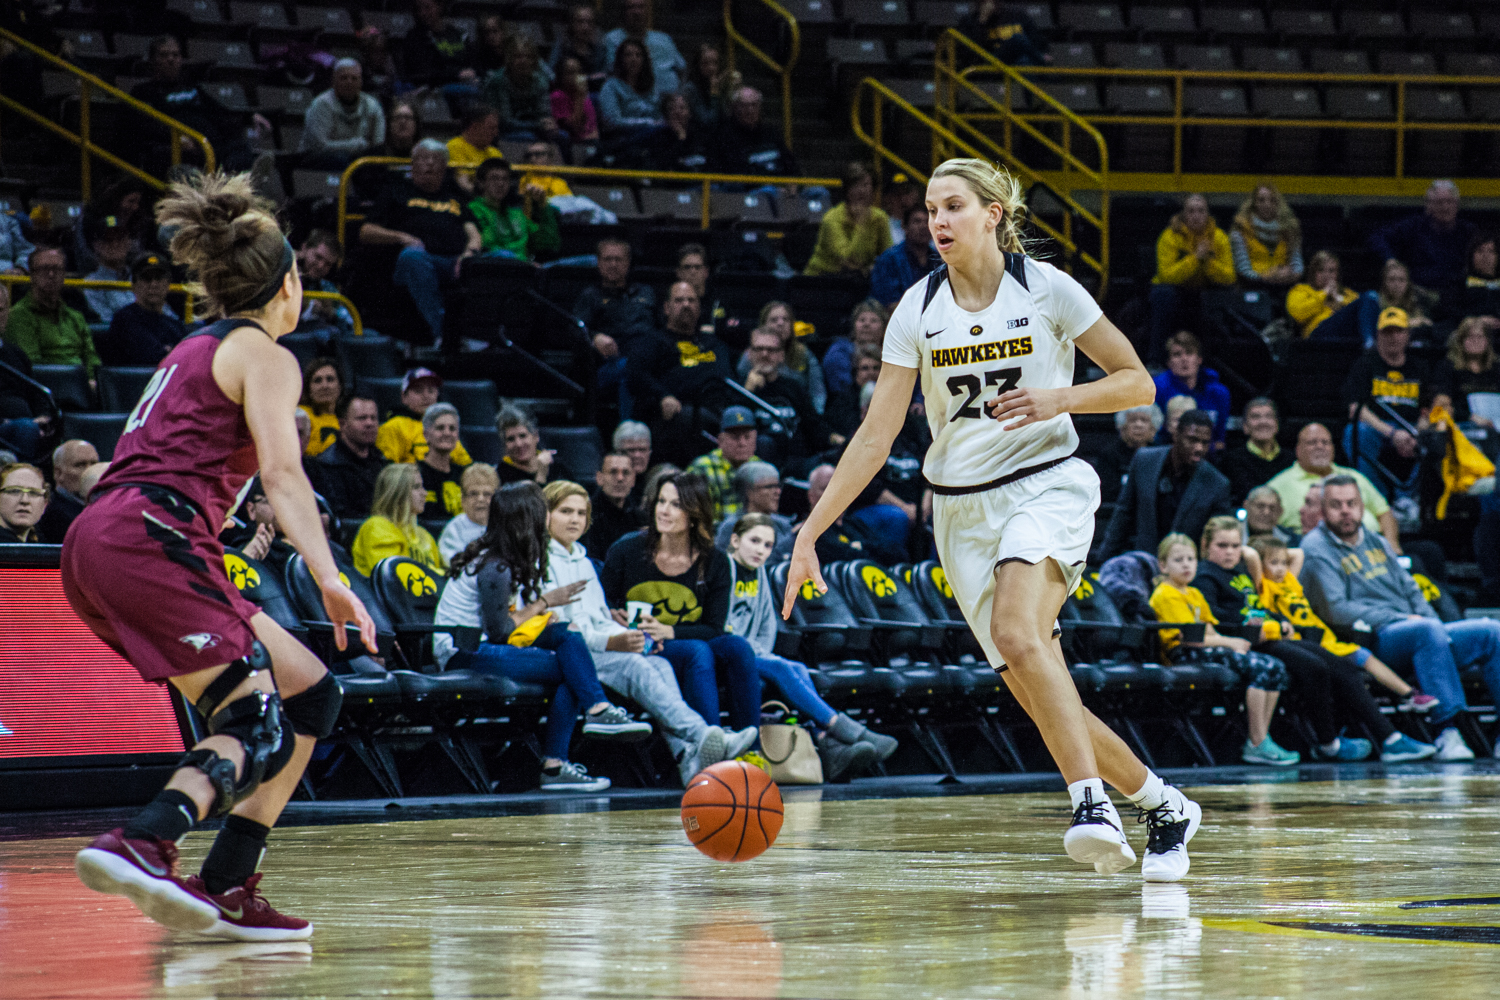 Iowa+forward+Logan+Cook+dribbles+the+ball+during+a+women%27s+basketball+game+between+Iowa+and+North+Carolina+Central+at+Carver-Hawkeye+Arena+on+Saturday%2C+Nov.+17%2C+2018.+The+Hawkeyes+devastated+the+visiting+Eagles%2C+106-39.+